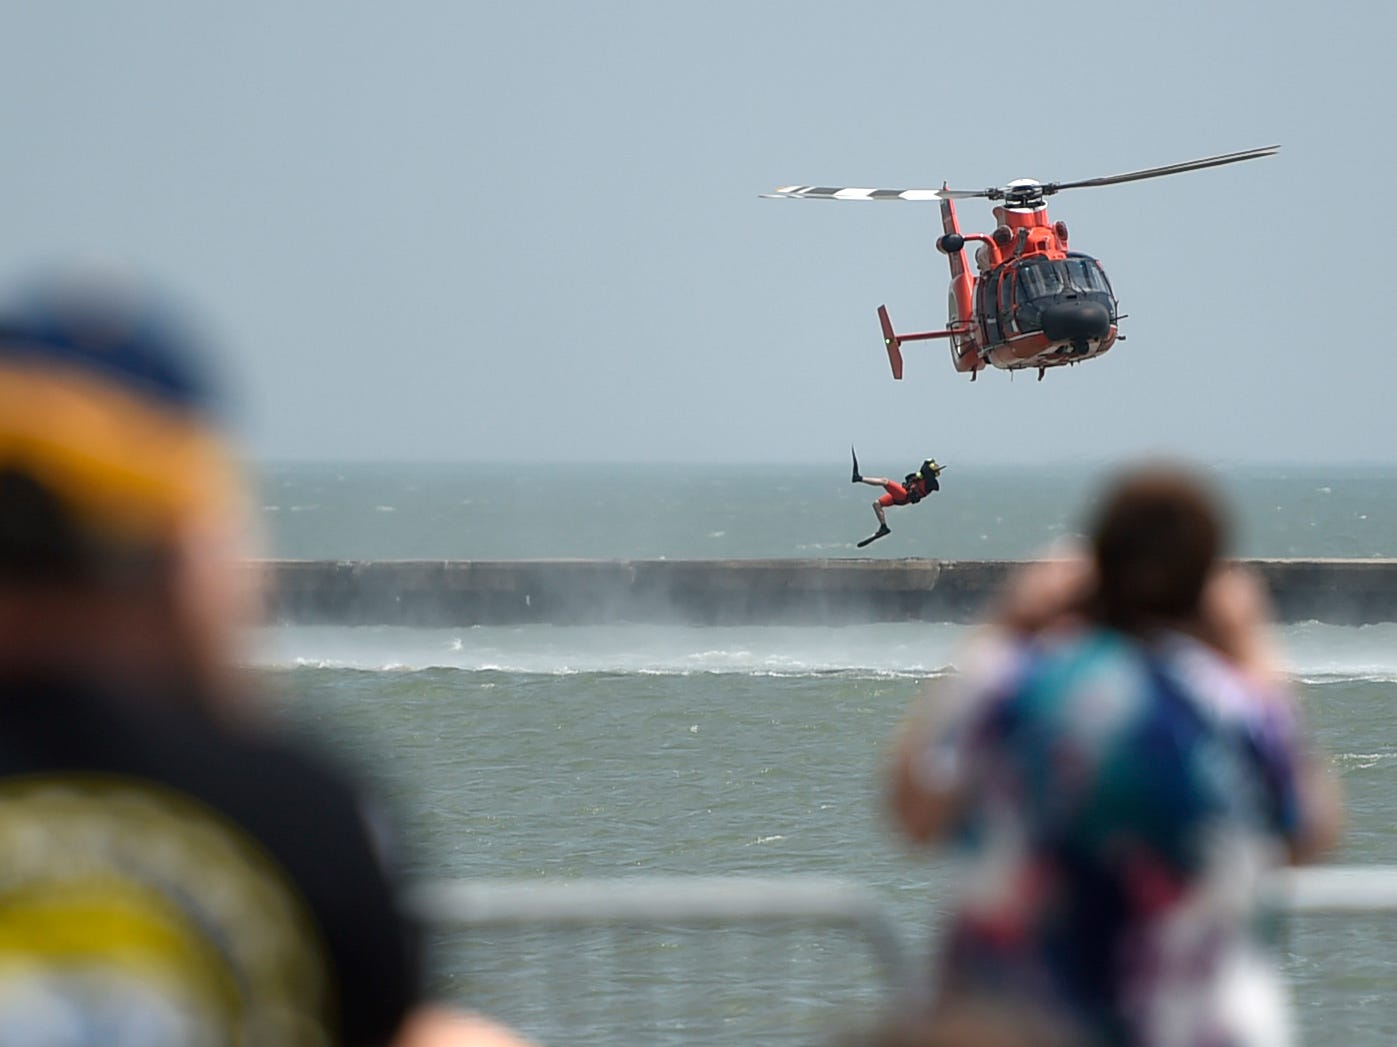 The Coast Guard hosts a rescue demonstration during the Wings Over South Texas Air Show, Saturday, April 13, 2019, at NAS Corpus Christi.